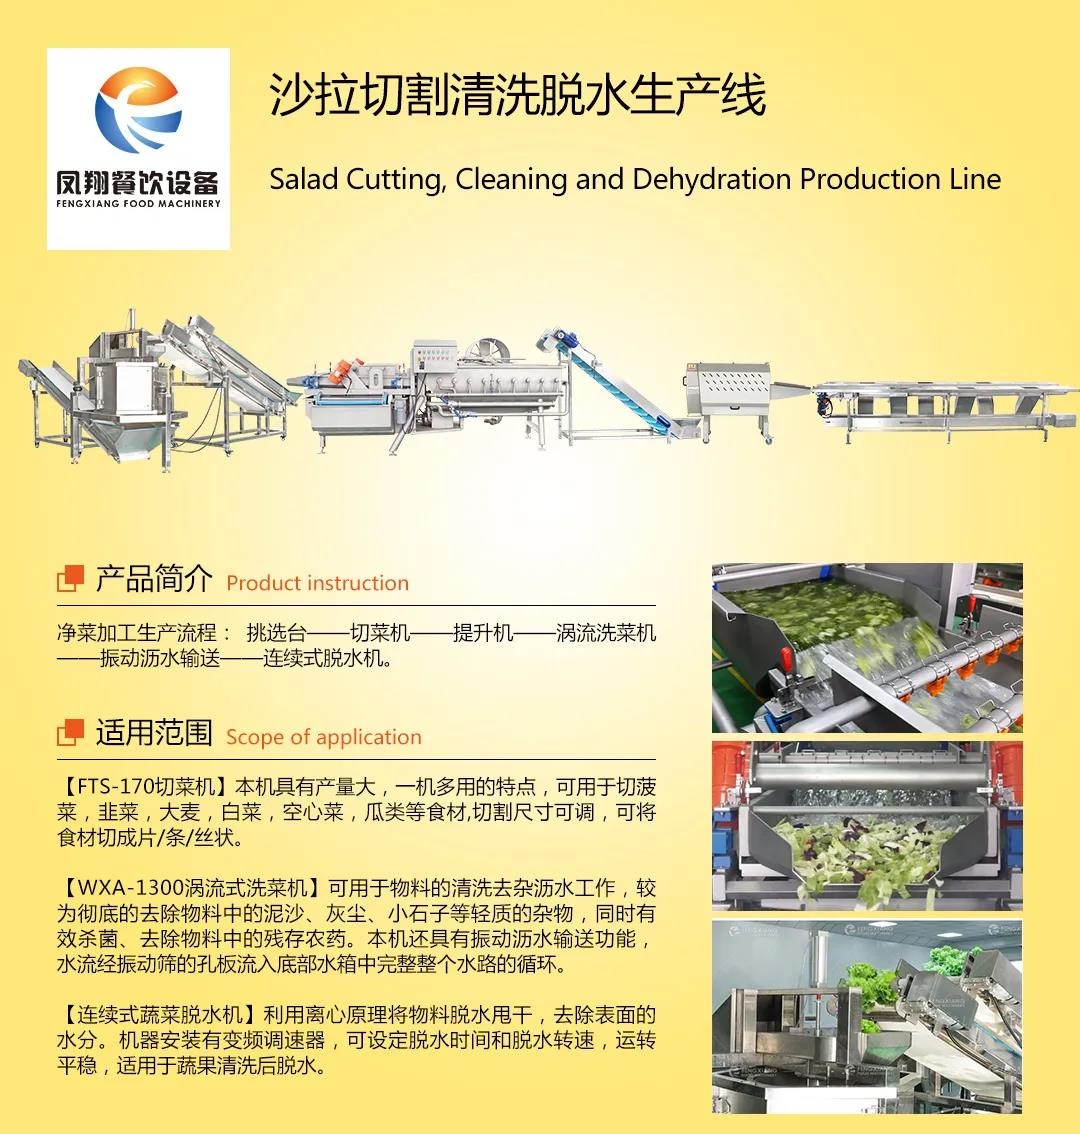 fengxiang salad processing line